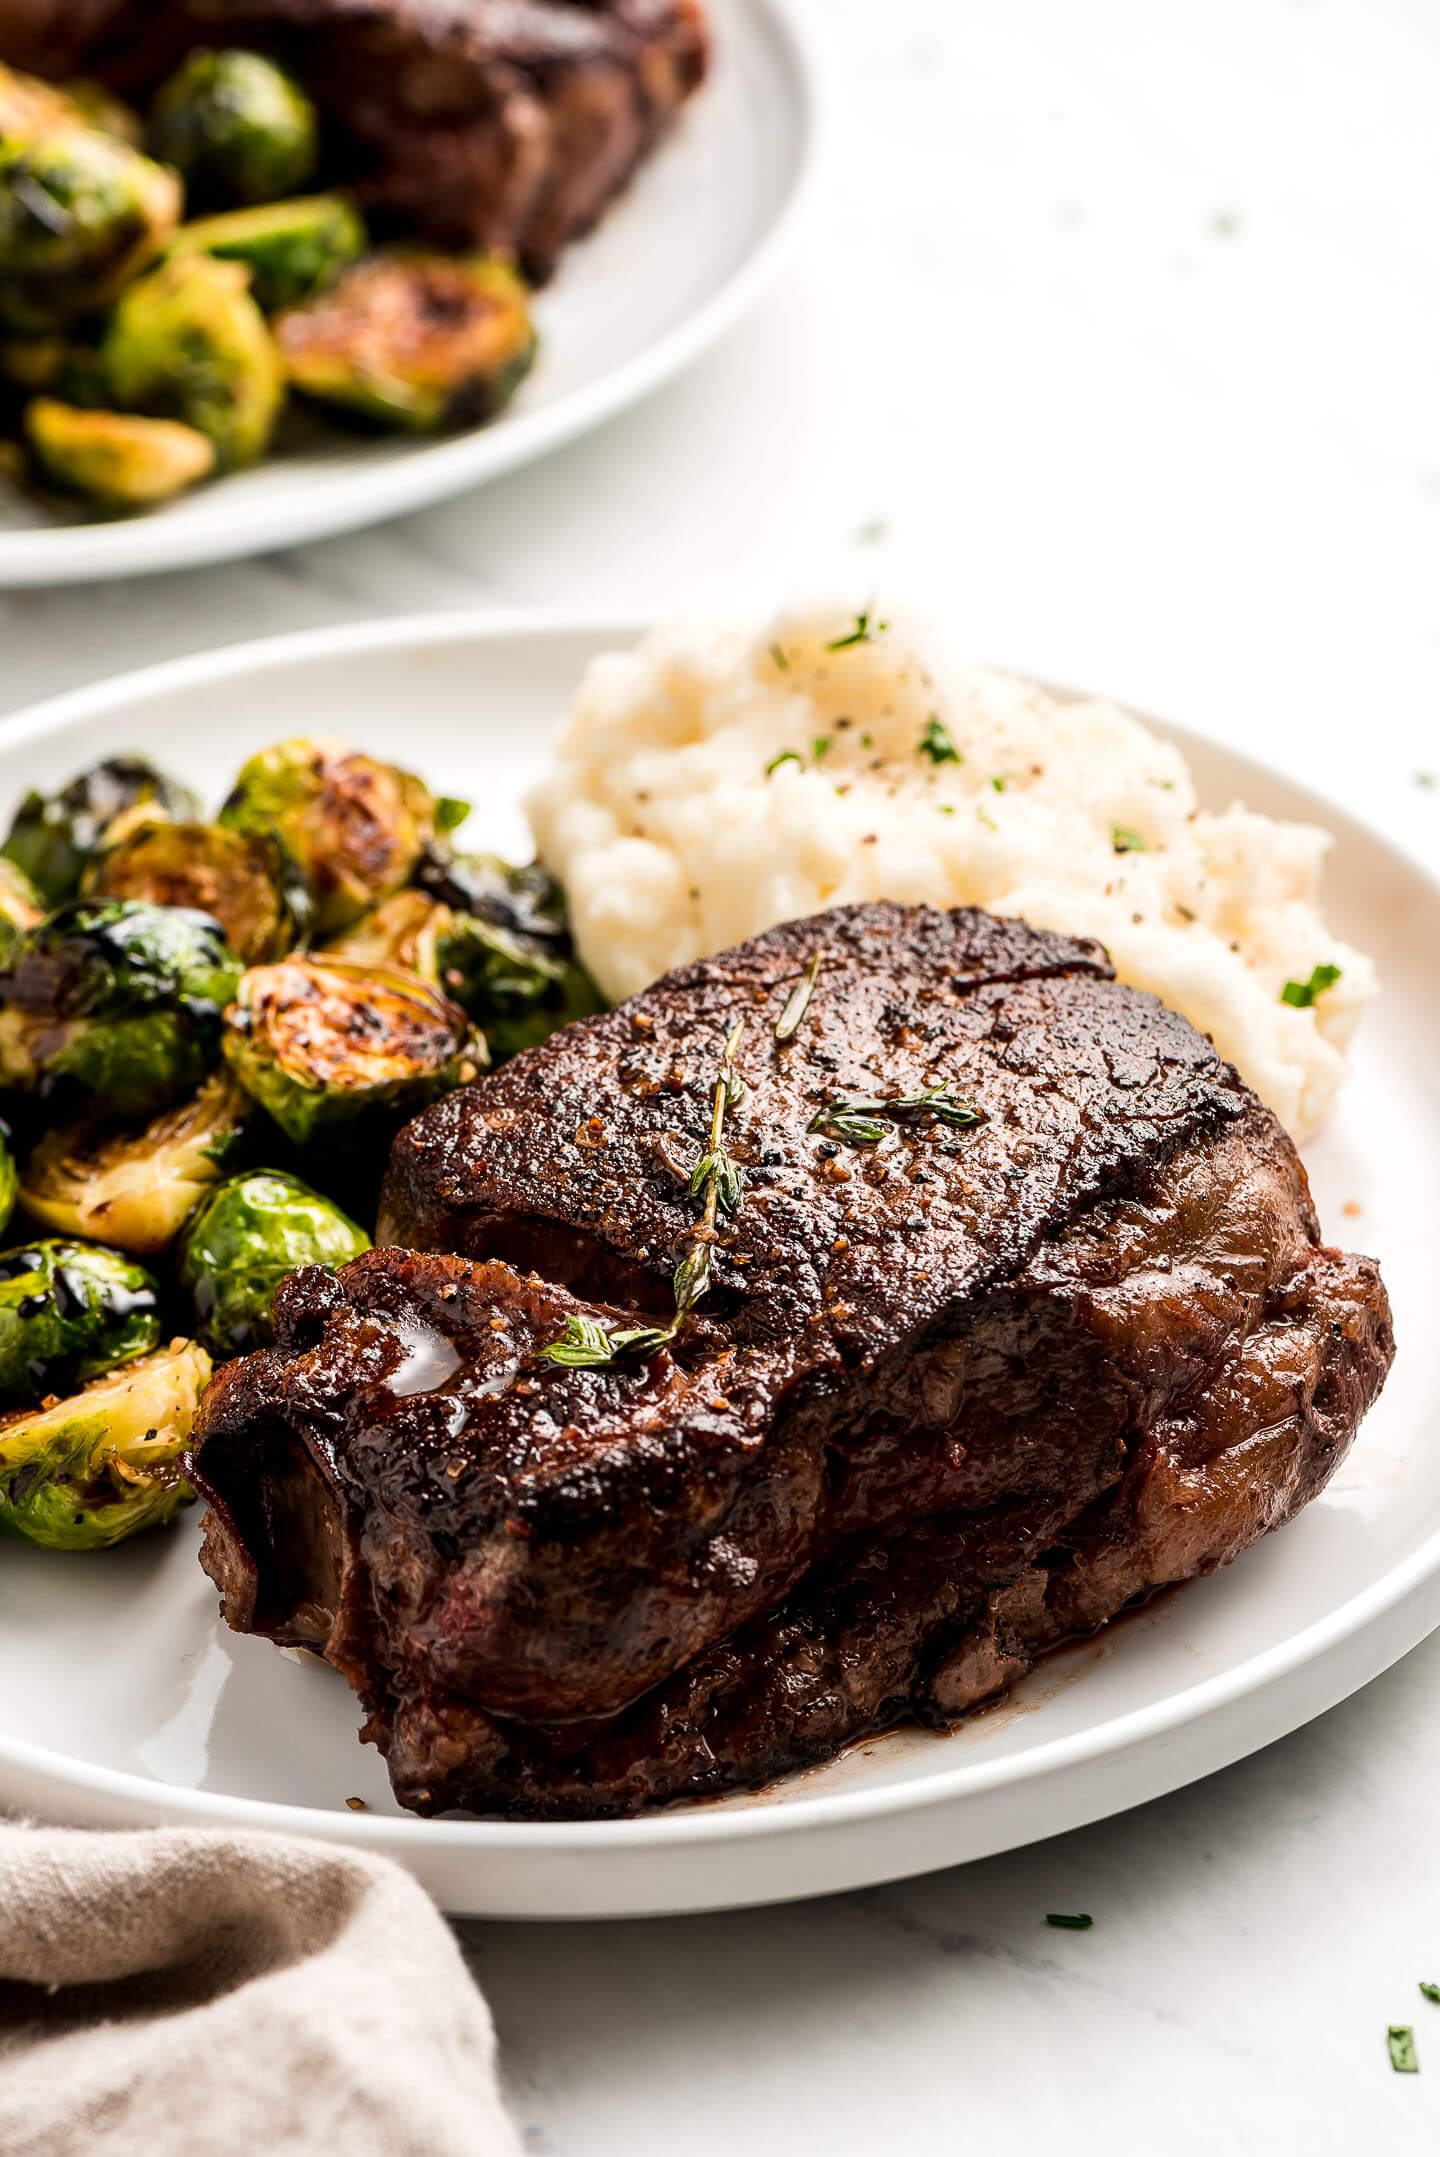 Filet Mignon, brussels sprouts, and mashed potatoes on a plate.